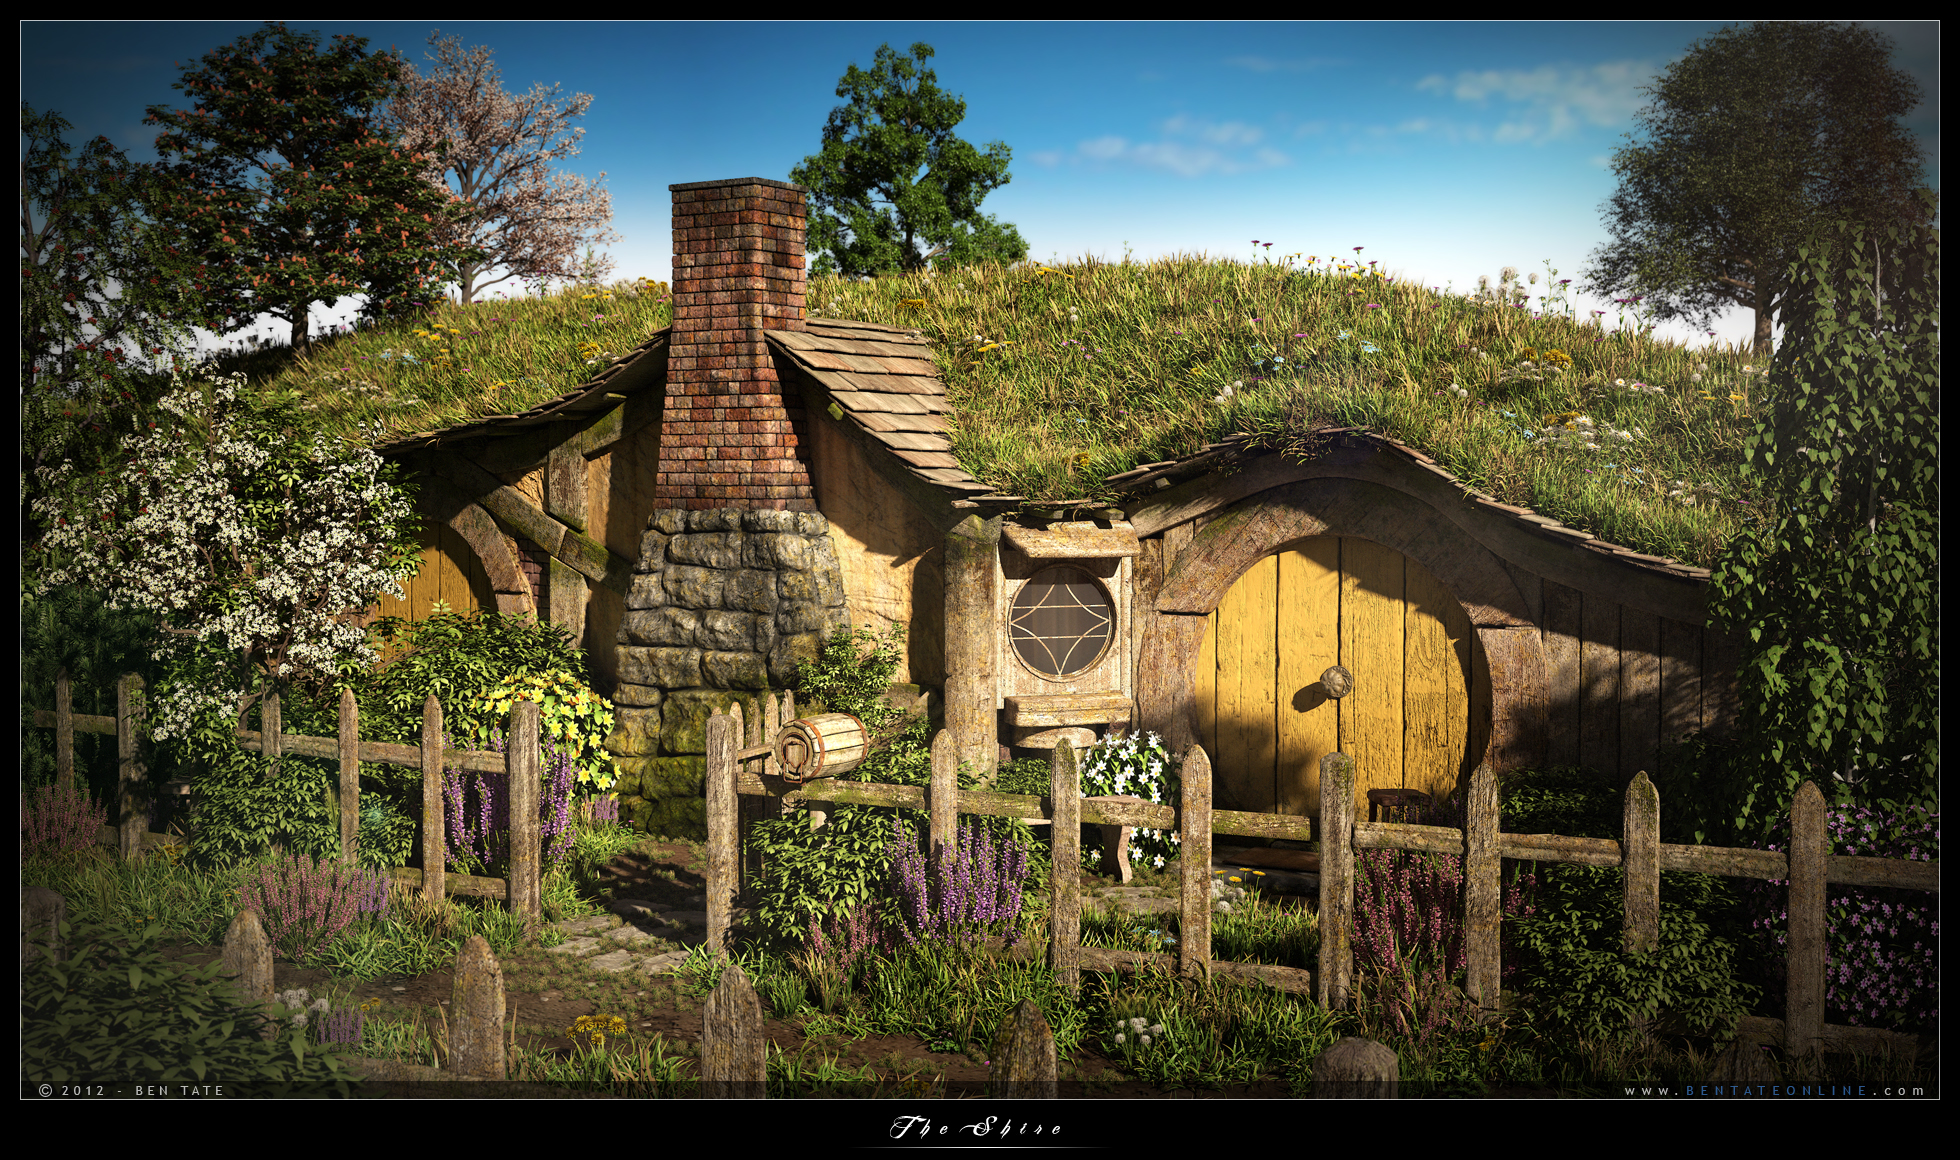 The Shire By Ben Tate Canada